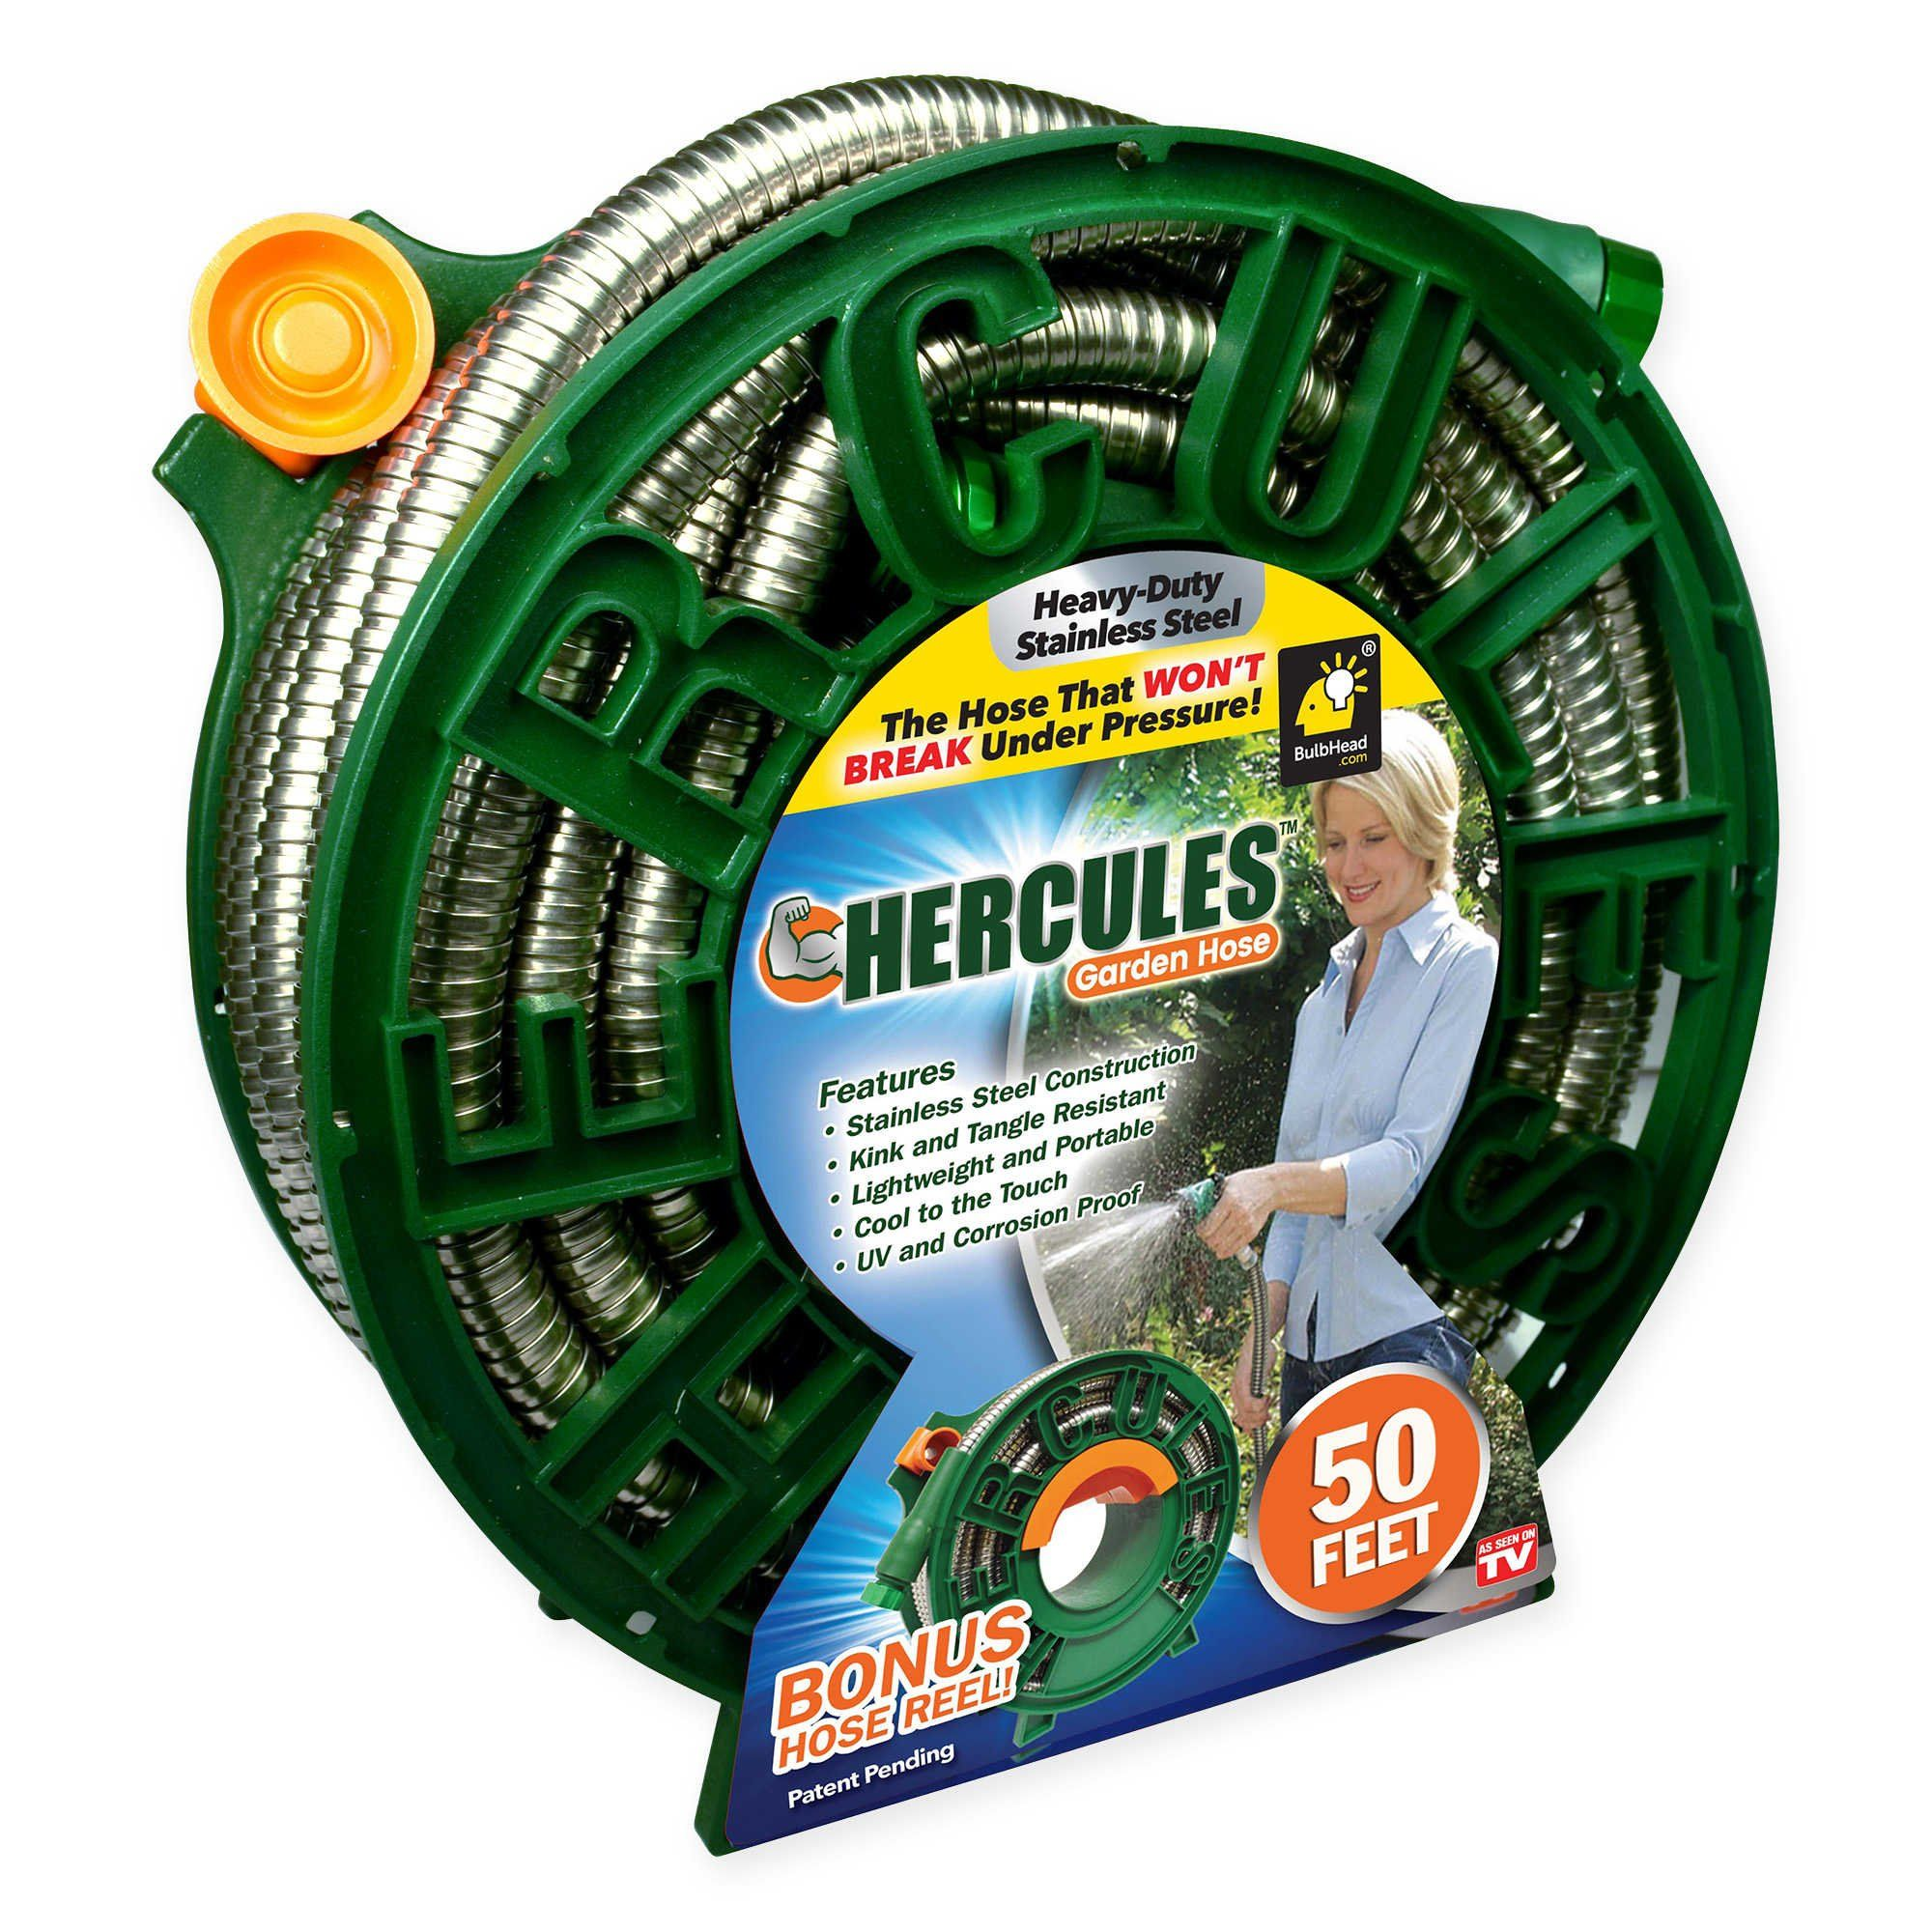 Hercules Lightweight And Portable 50 Feet Garden Hose Resistant To